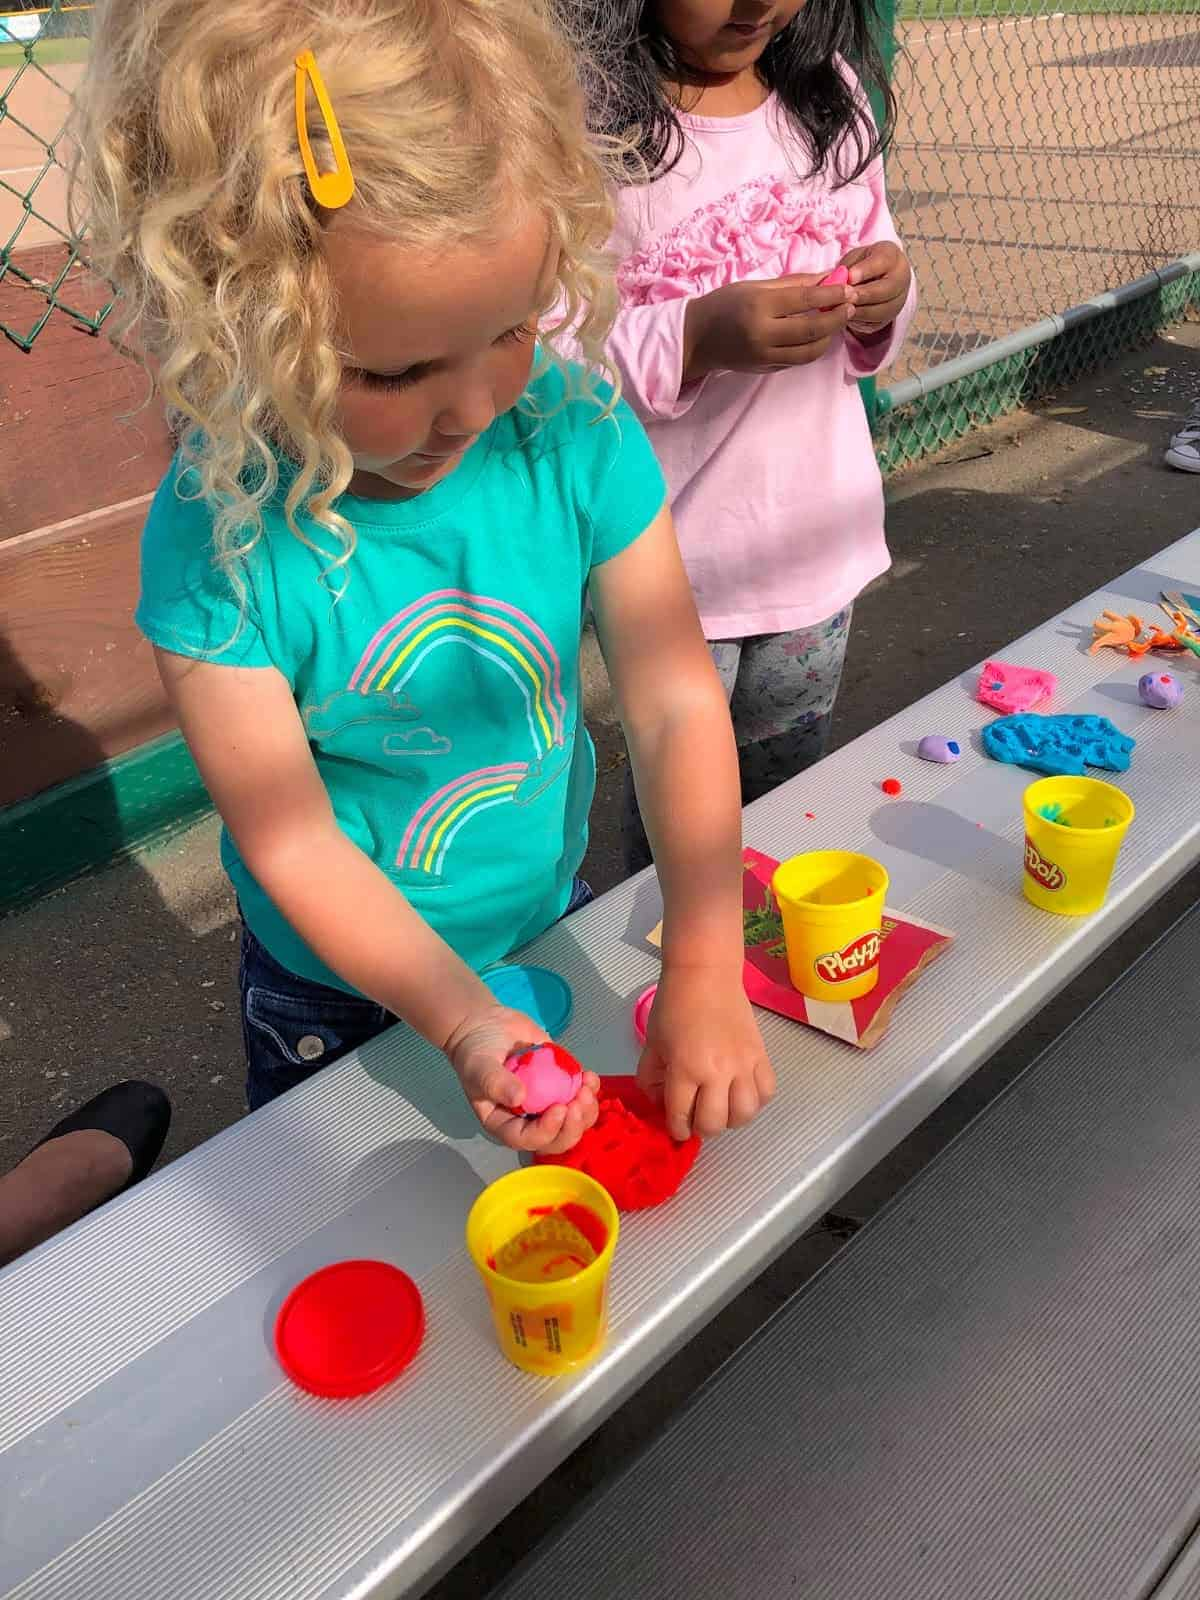 two girls playing with playdough on a baseball field bleacher